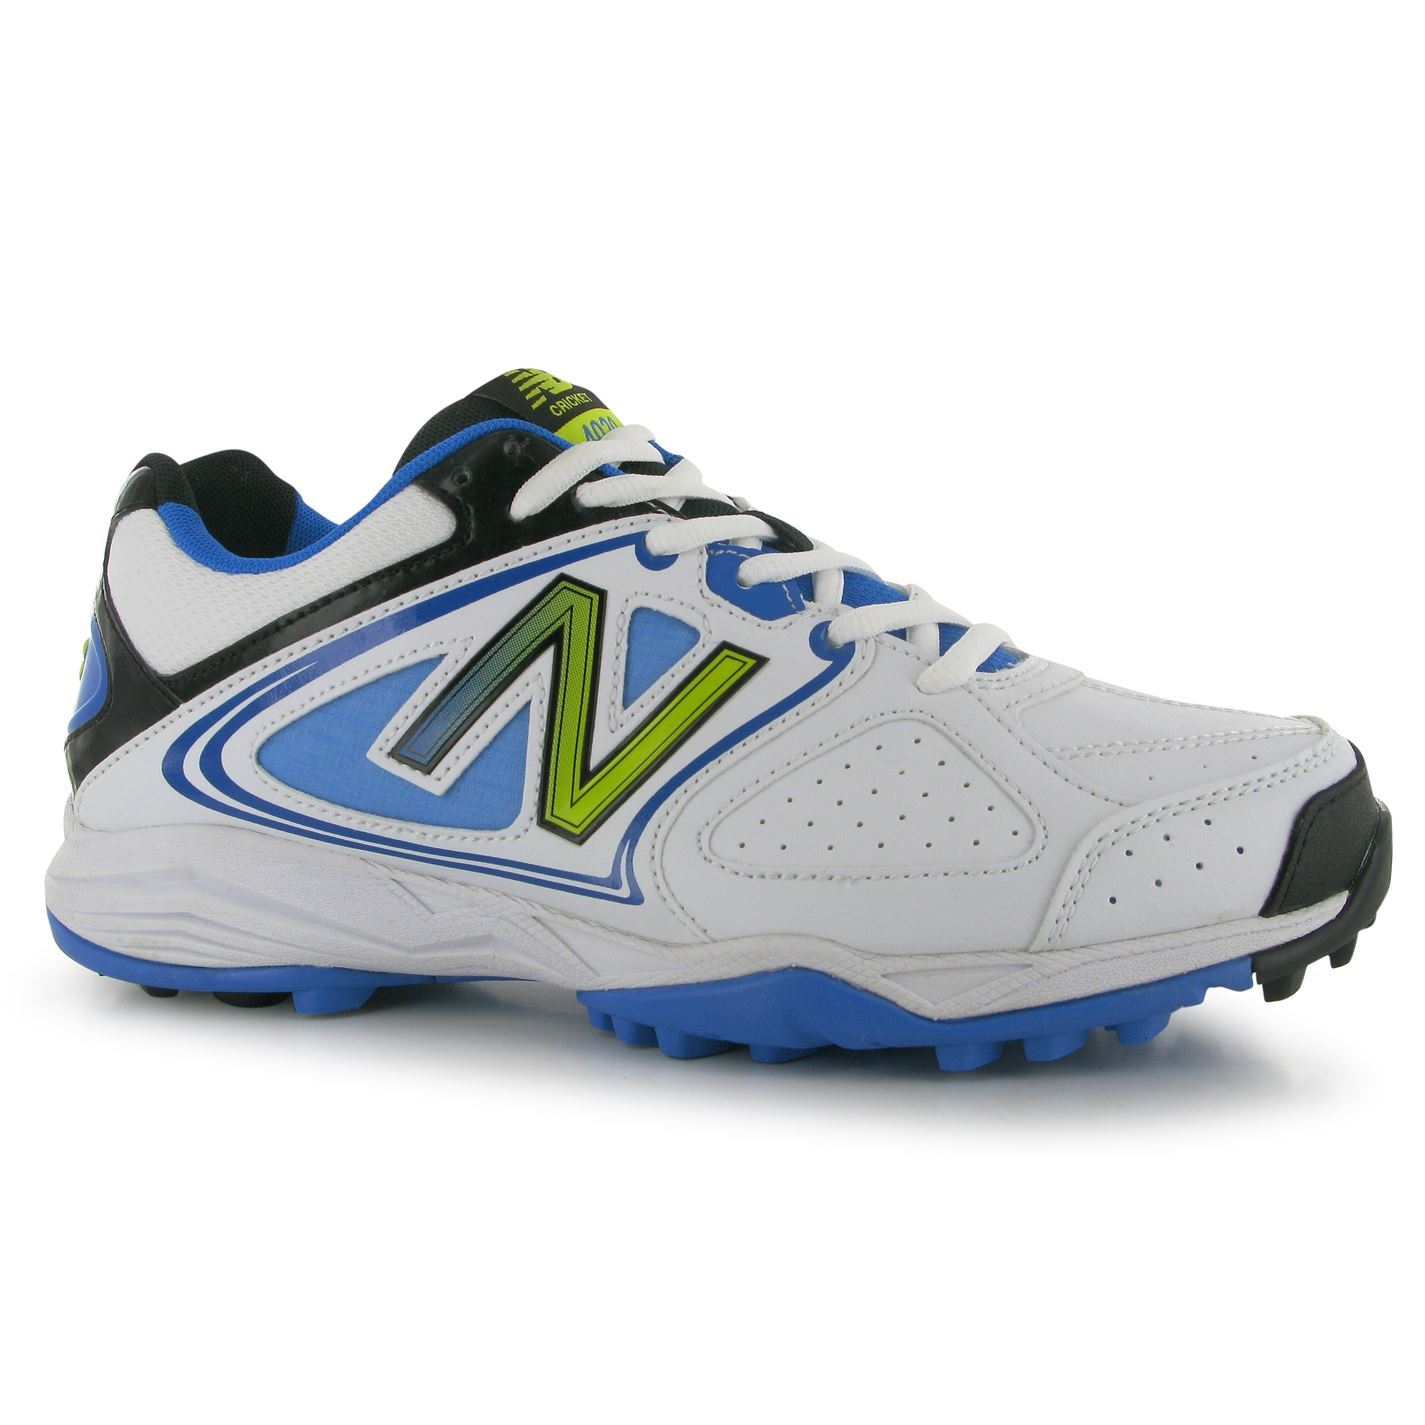 new balance mens 4020 shoe spikes lace up cricket sports